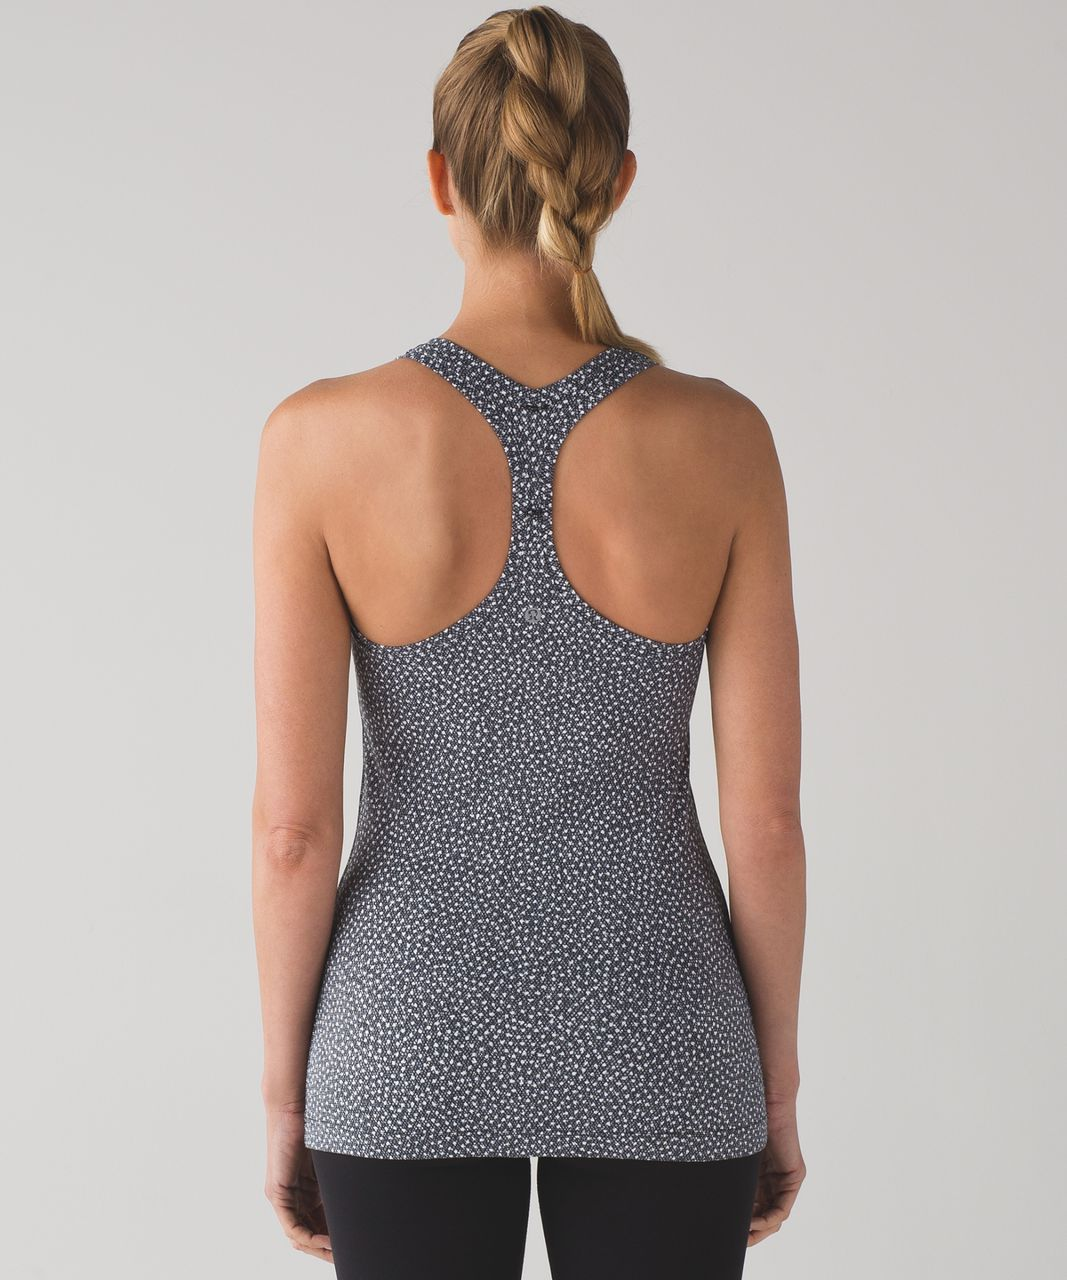 Lululemon Cool Racerback II (First Release) - Frozen Fizz White Black